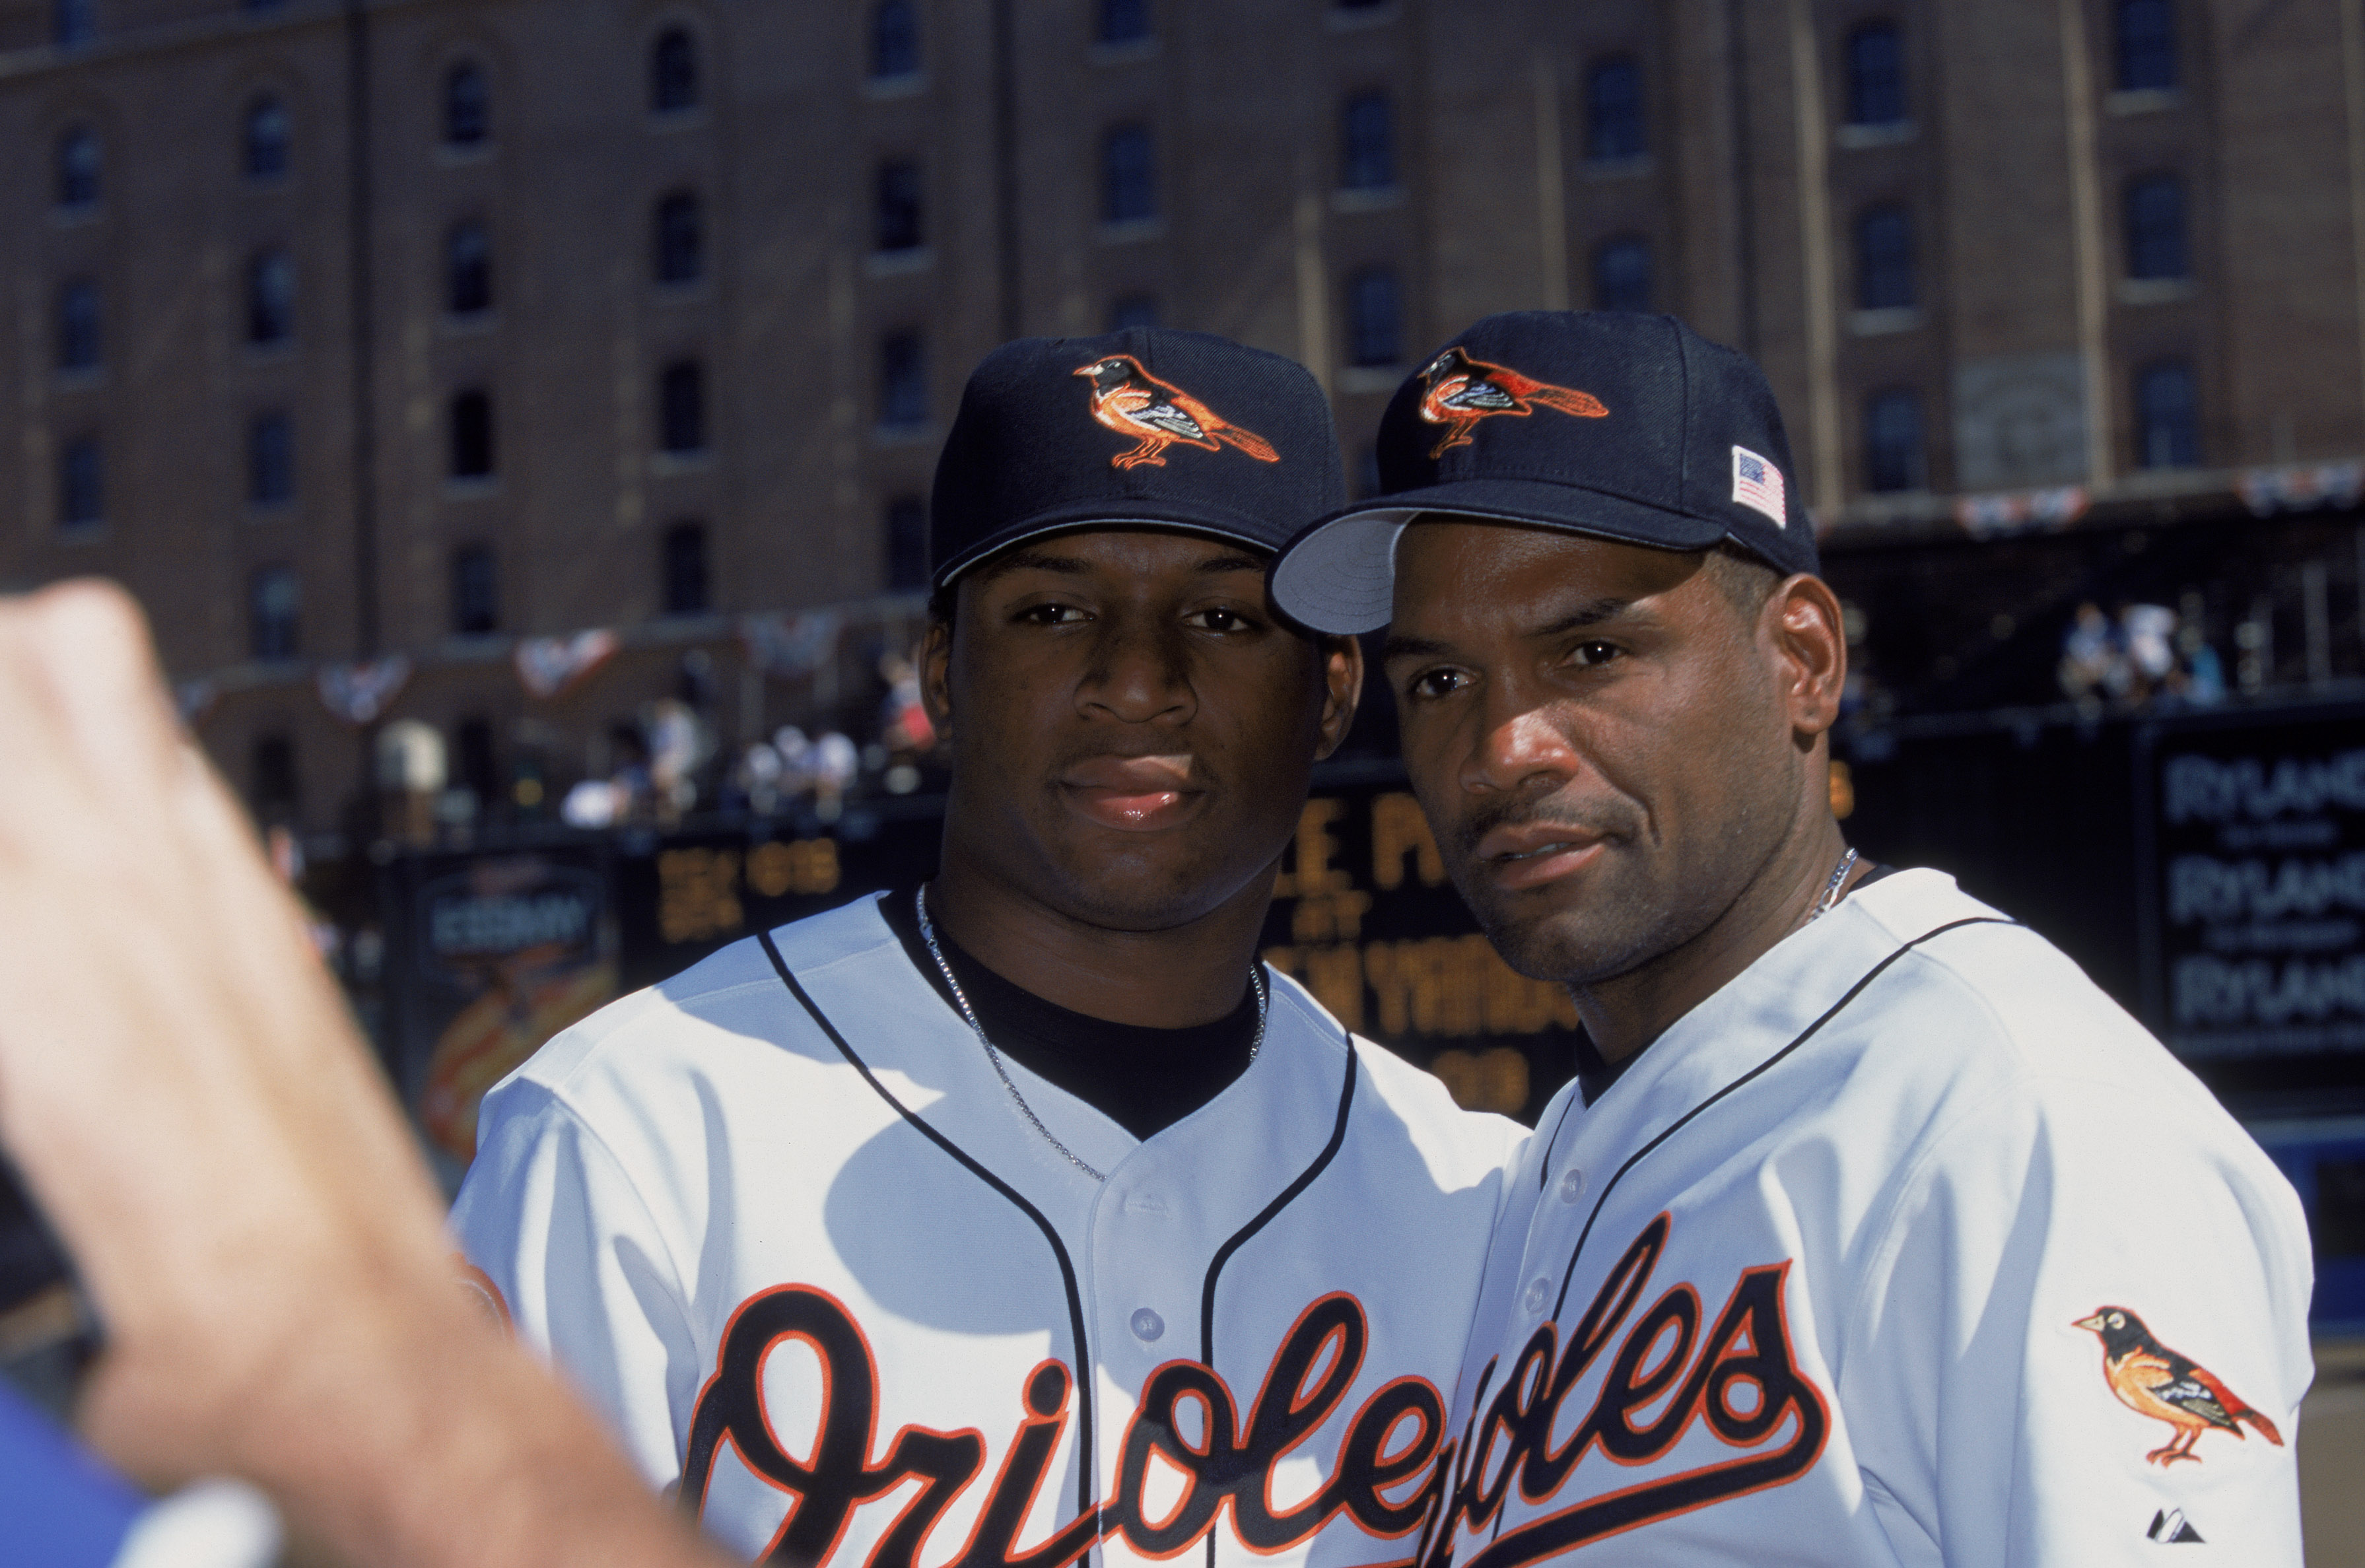 Time Raines Sr. and Tim Raines Jr. once played together for the Orioles.